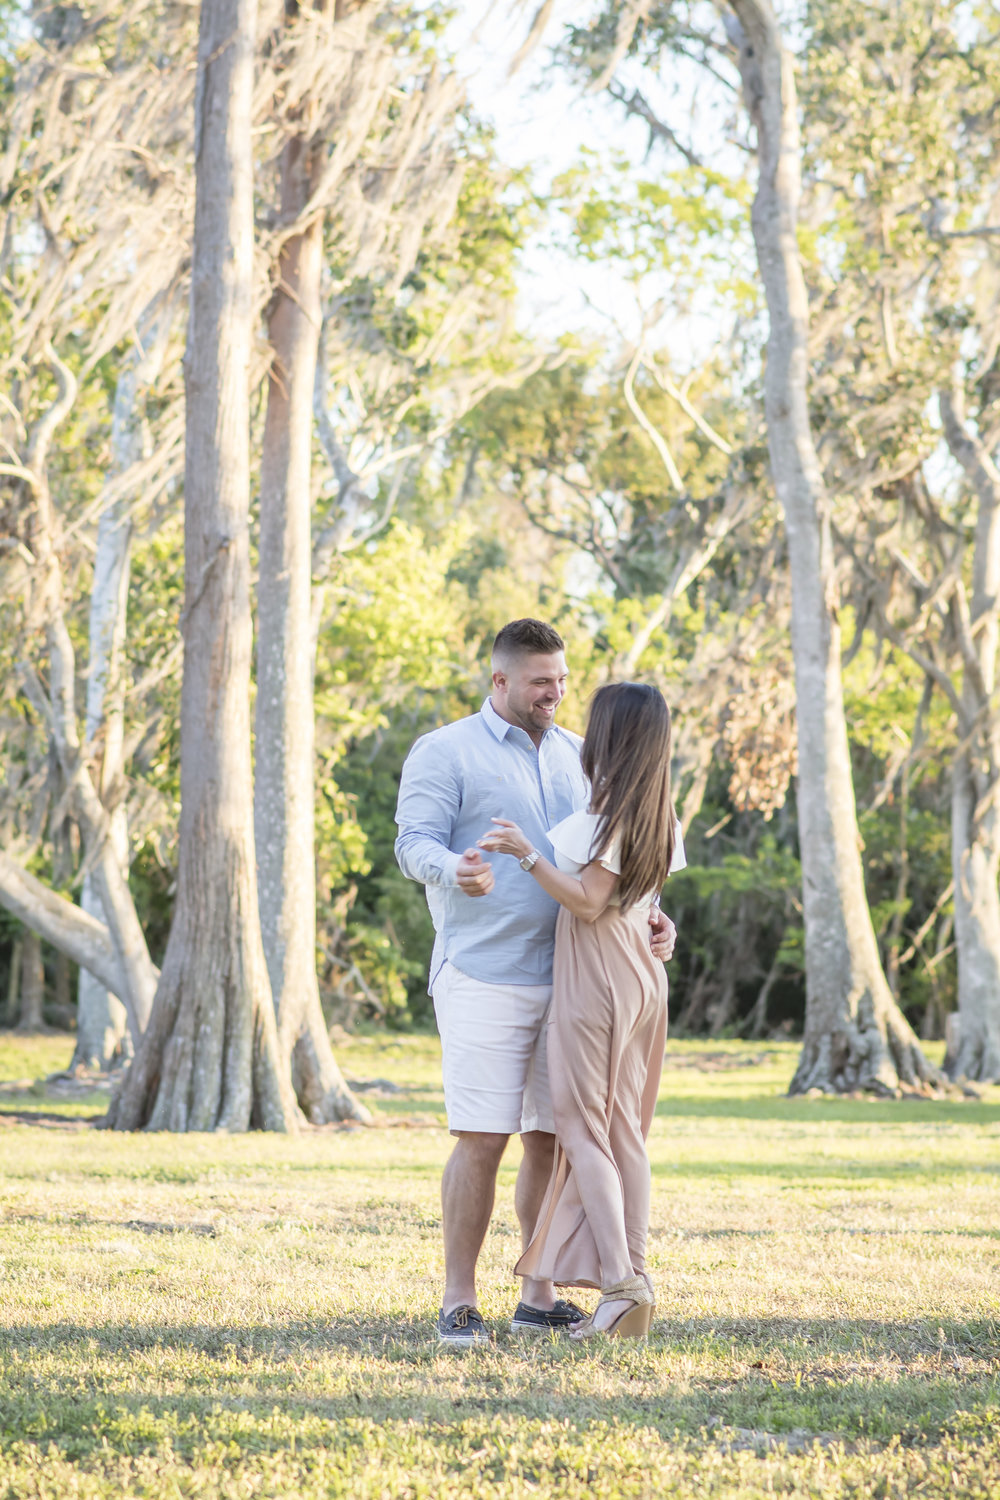 cypress-grove-park-engagement-session-orlando-photographer-yanitza-ninett-16.jpg